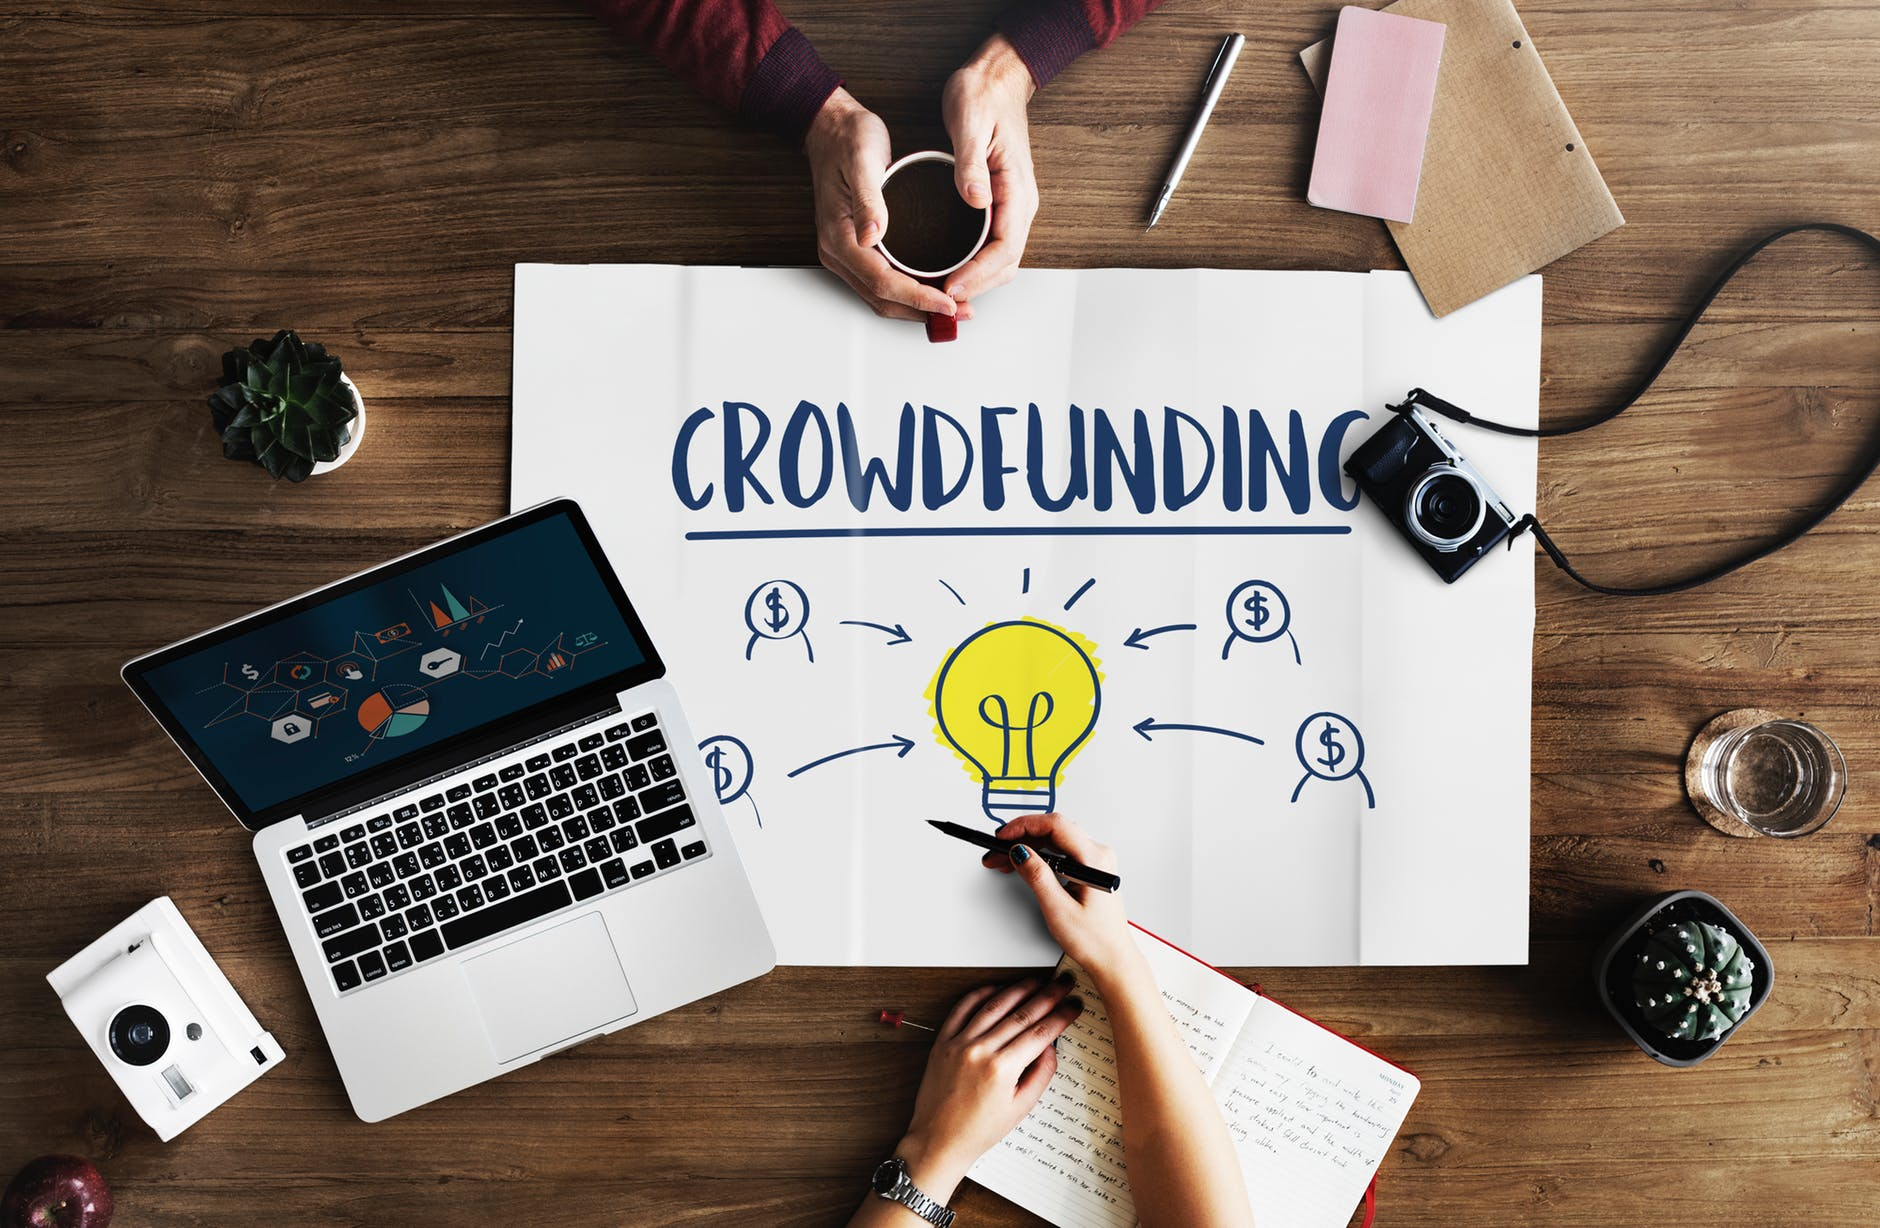 CoStar News - Real Estate Crowdfunding Hits a Speed Bump